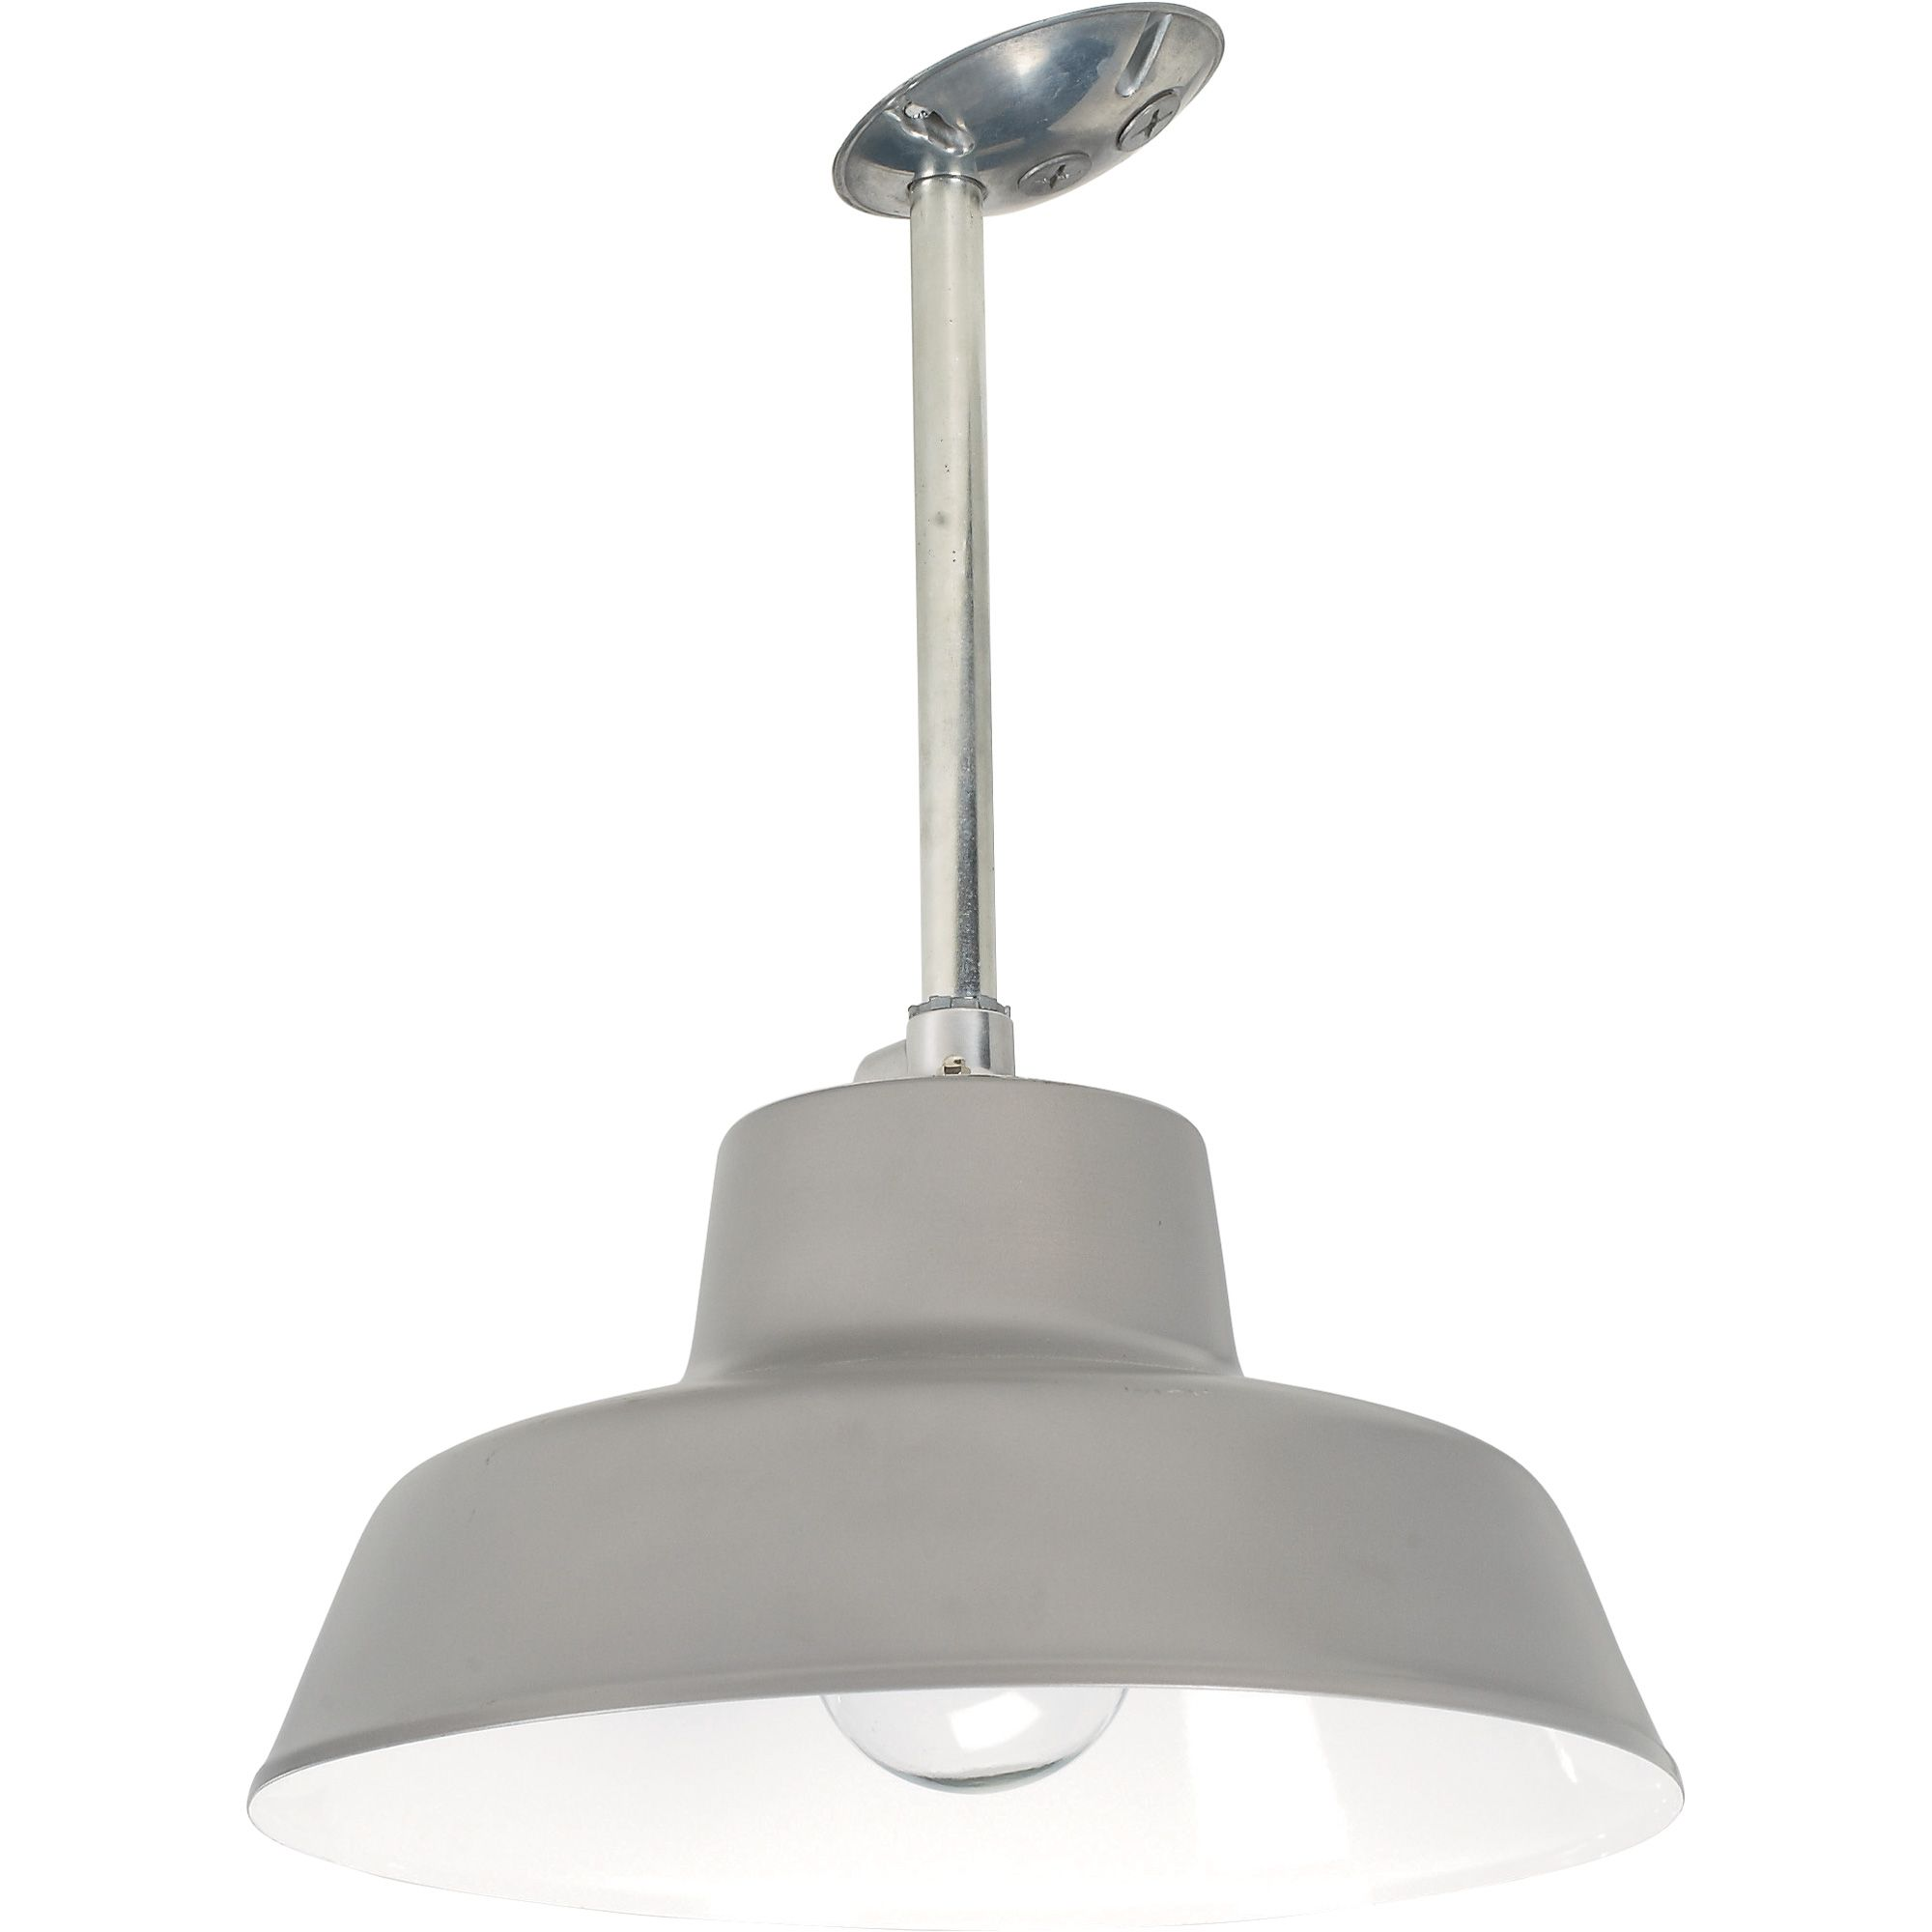 Canarm suspended ceiling barn light 14 38in dia 120 volts 300 this canarm suspended ceiling barn light hangs from an cord to light your industrialagricultural building csa us approved for damp locations arubaitofo Gallery